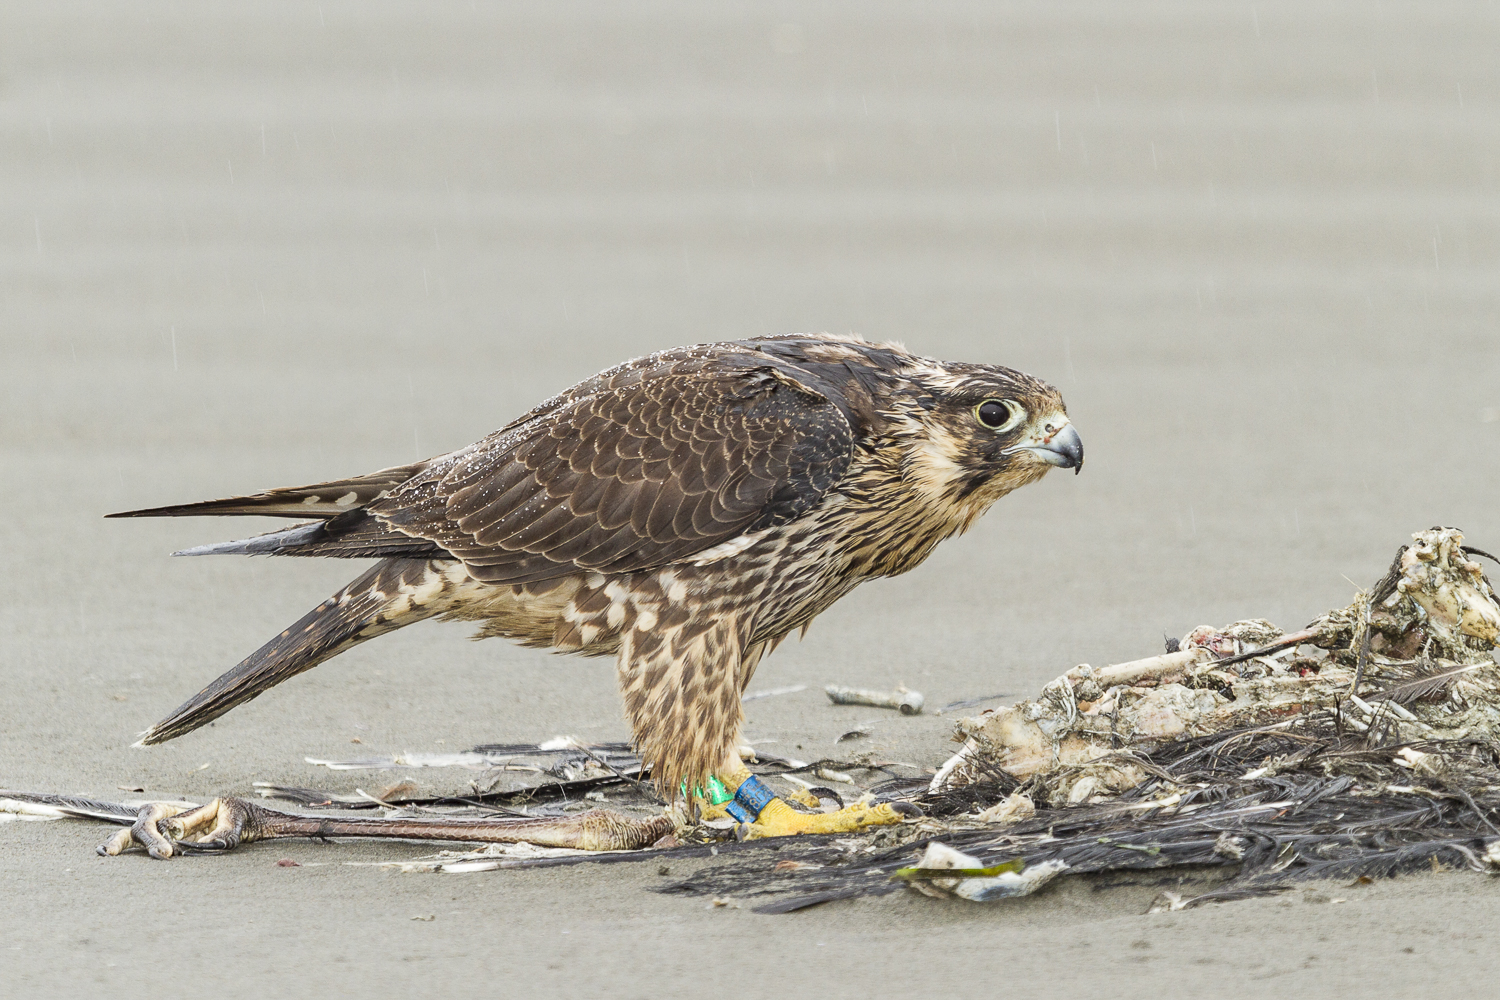 Peregrine Falcon in the rain, taken with Fill Flash and a CTO gel